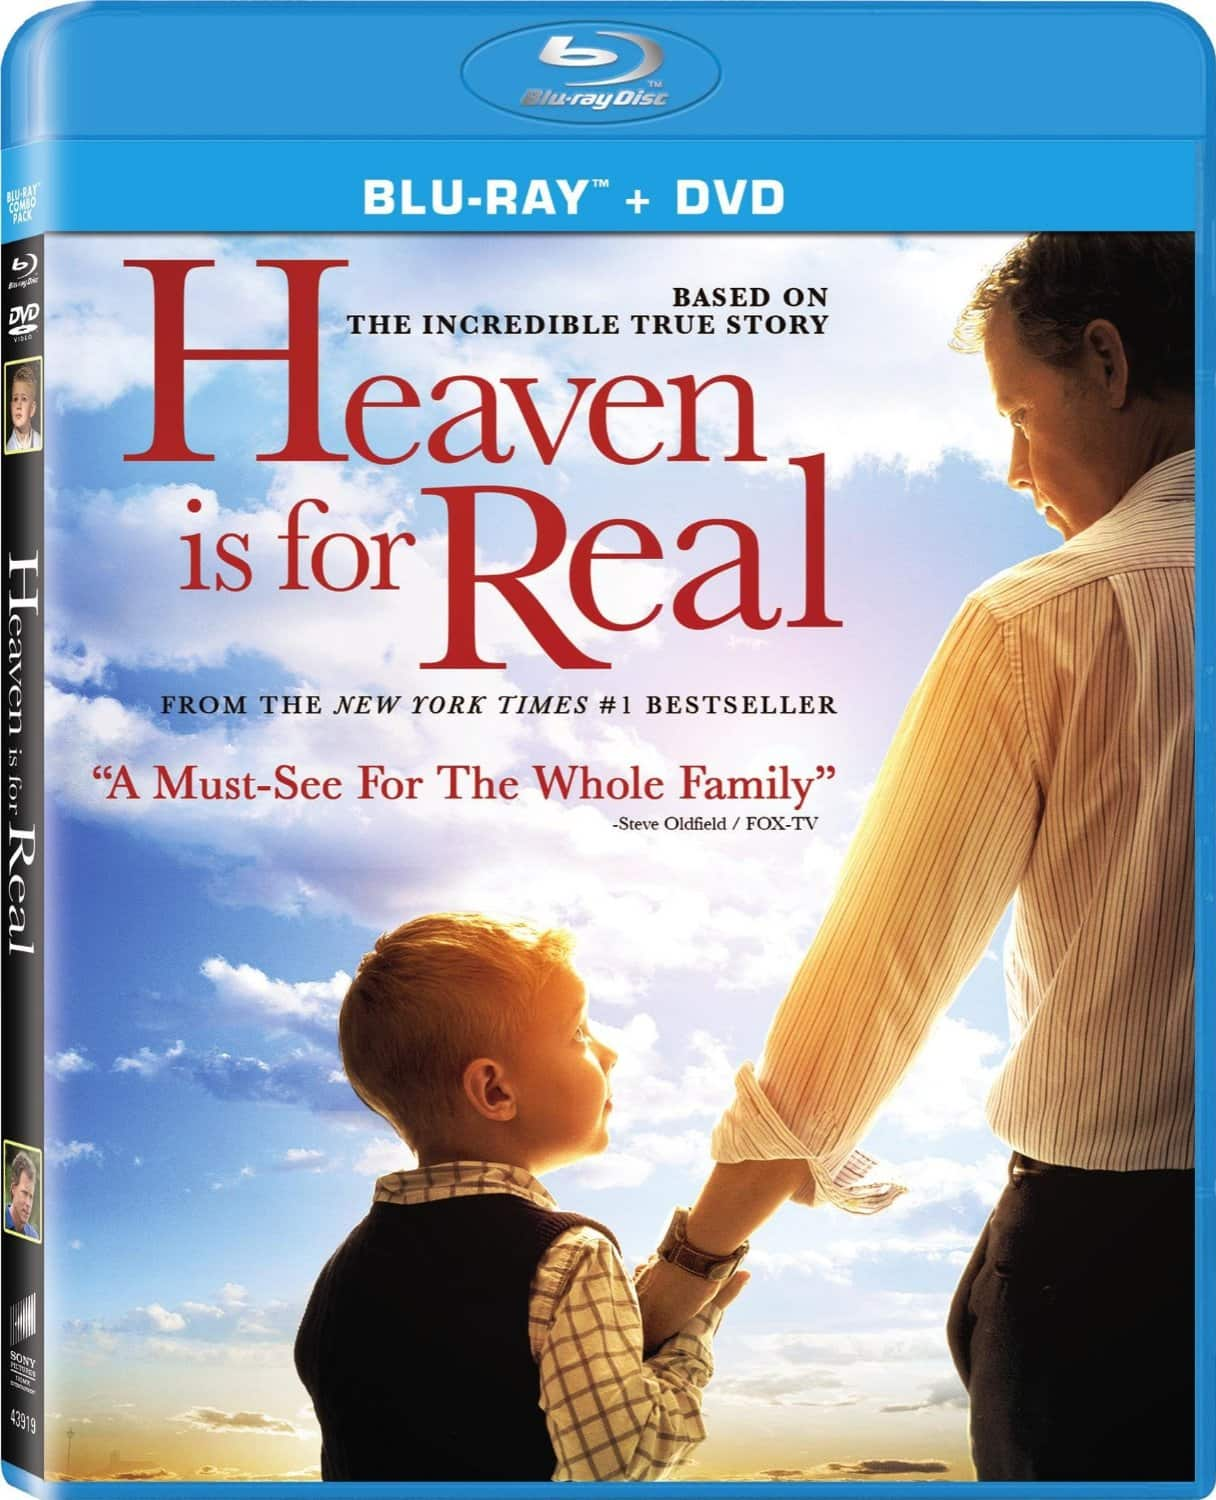 Heaven is For Real (2 Discs) - Blu-ray/DVD/UltraViolet Combo Pack $2.99 FSSS or FS with prime